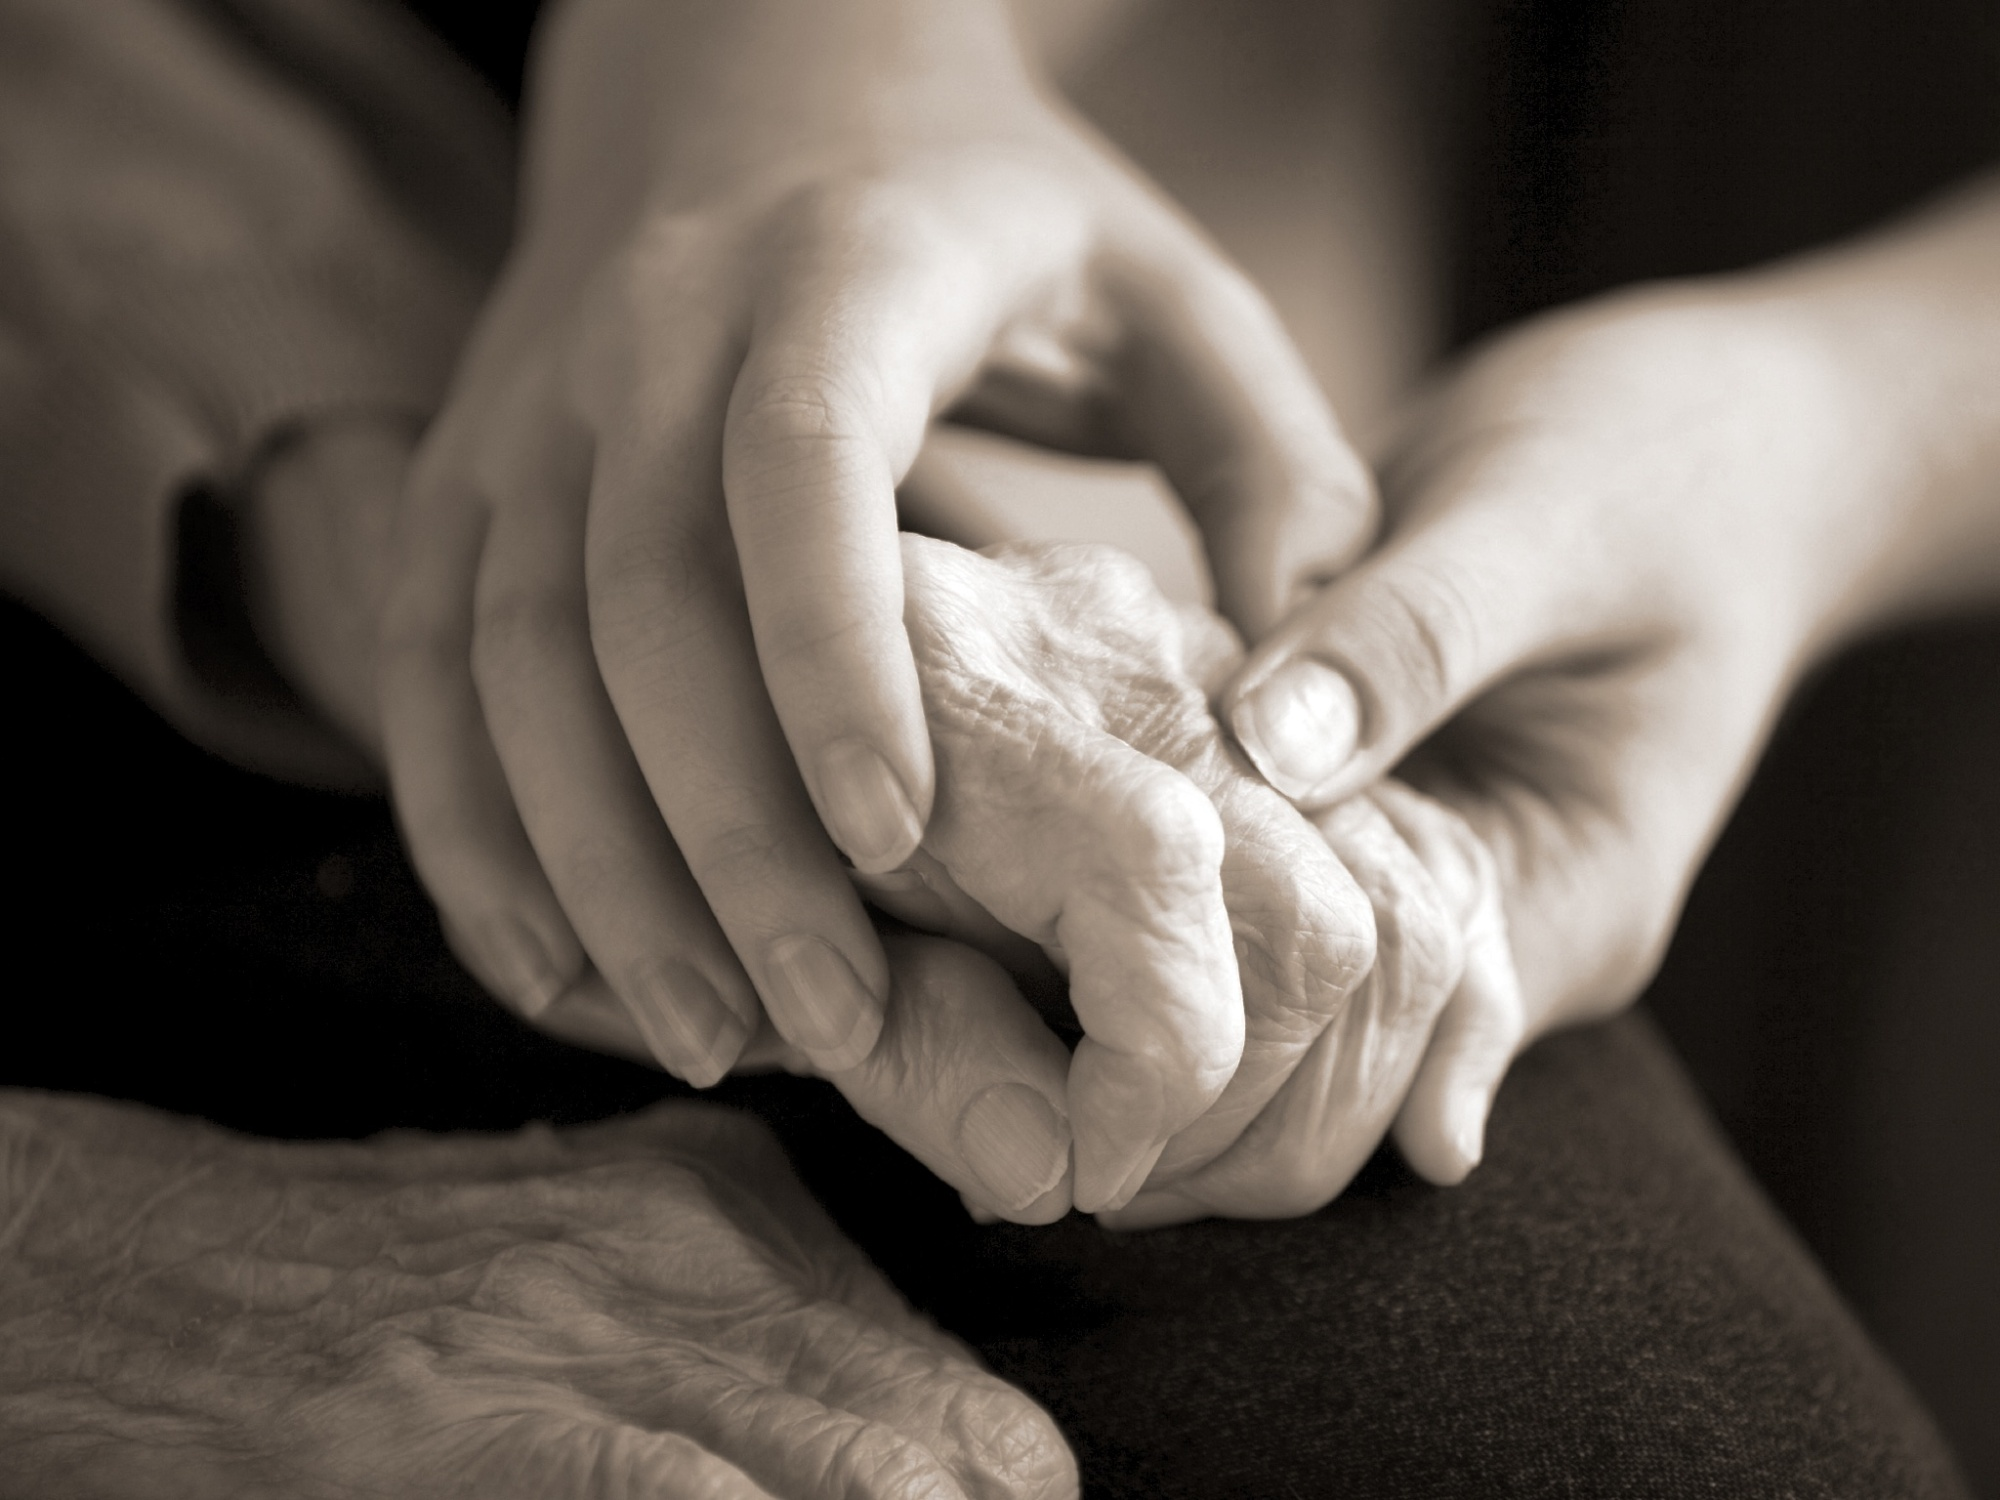 care for our elders